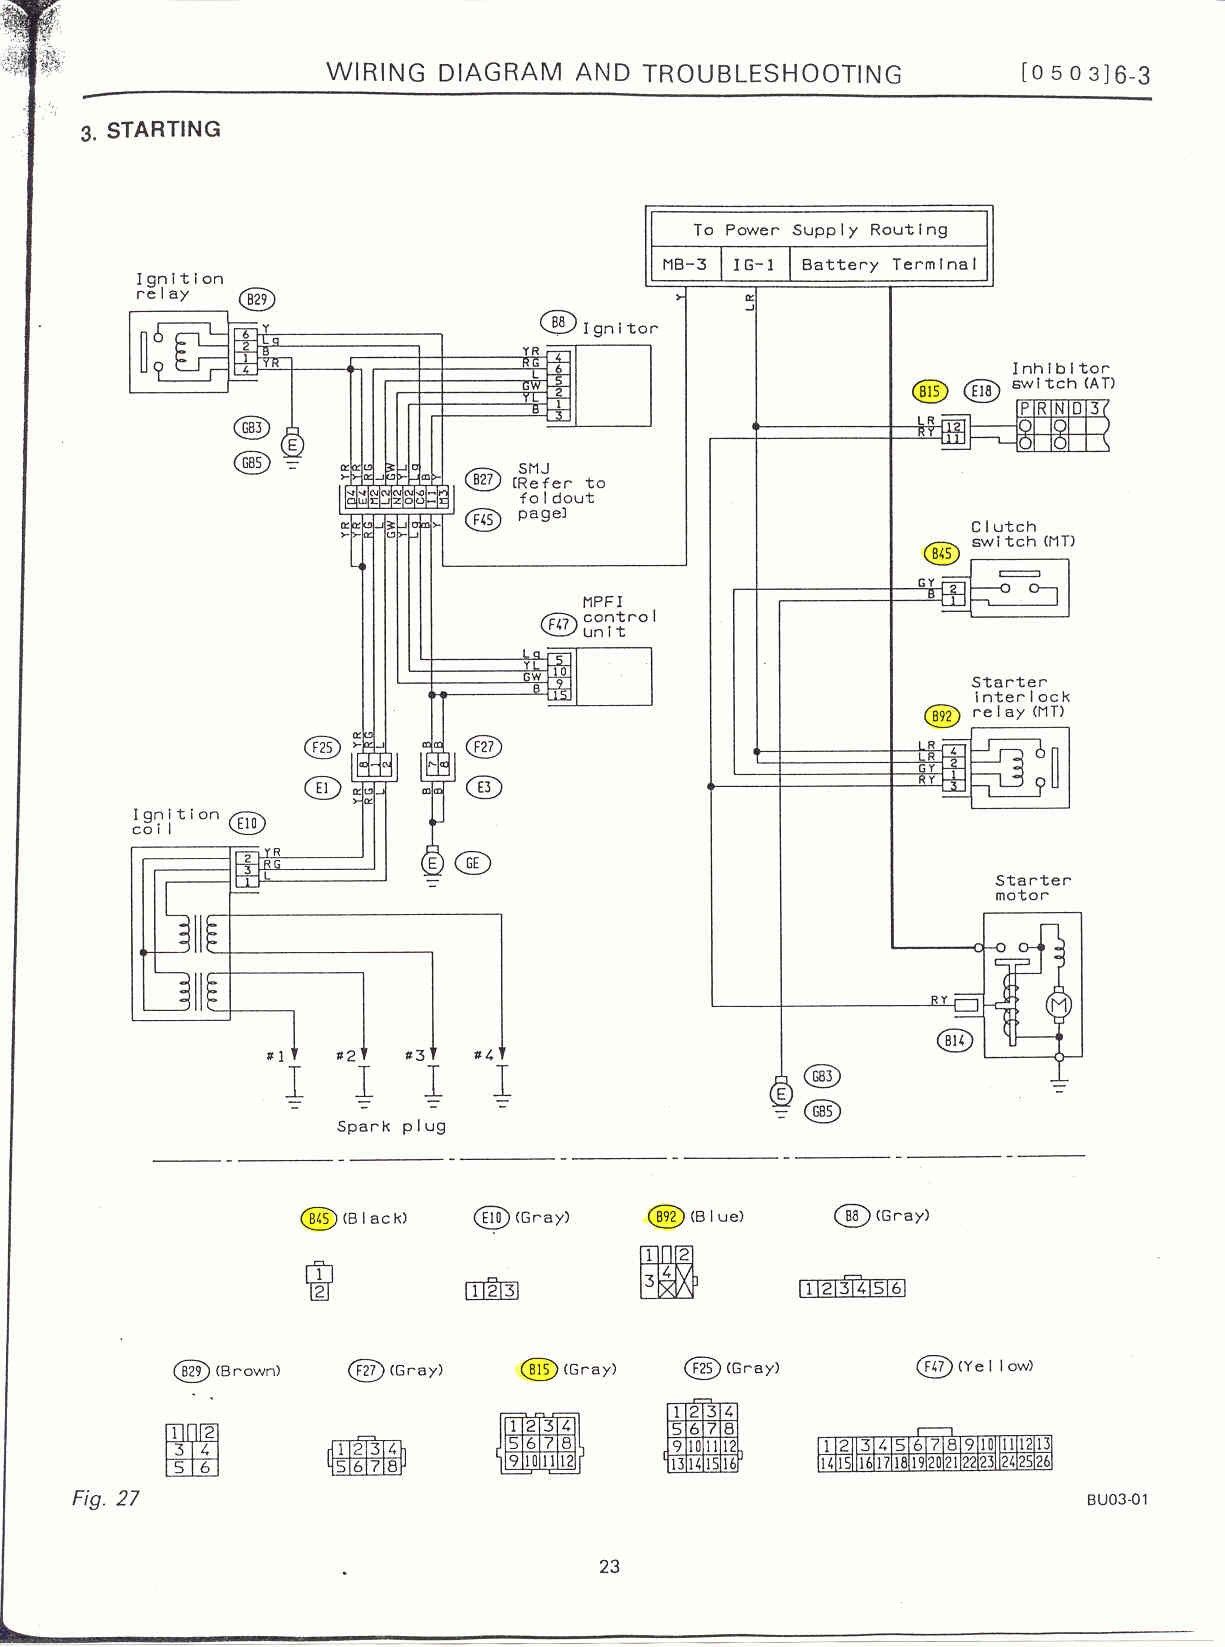 97 Subaru Impreza Engine Diagram Modern Design Of Wiring Outback Parts 1997 Simple Rh 4 1 Mara Cujas De 2000